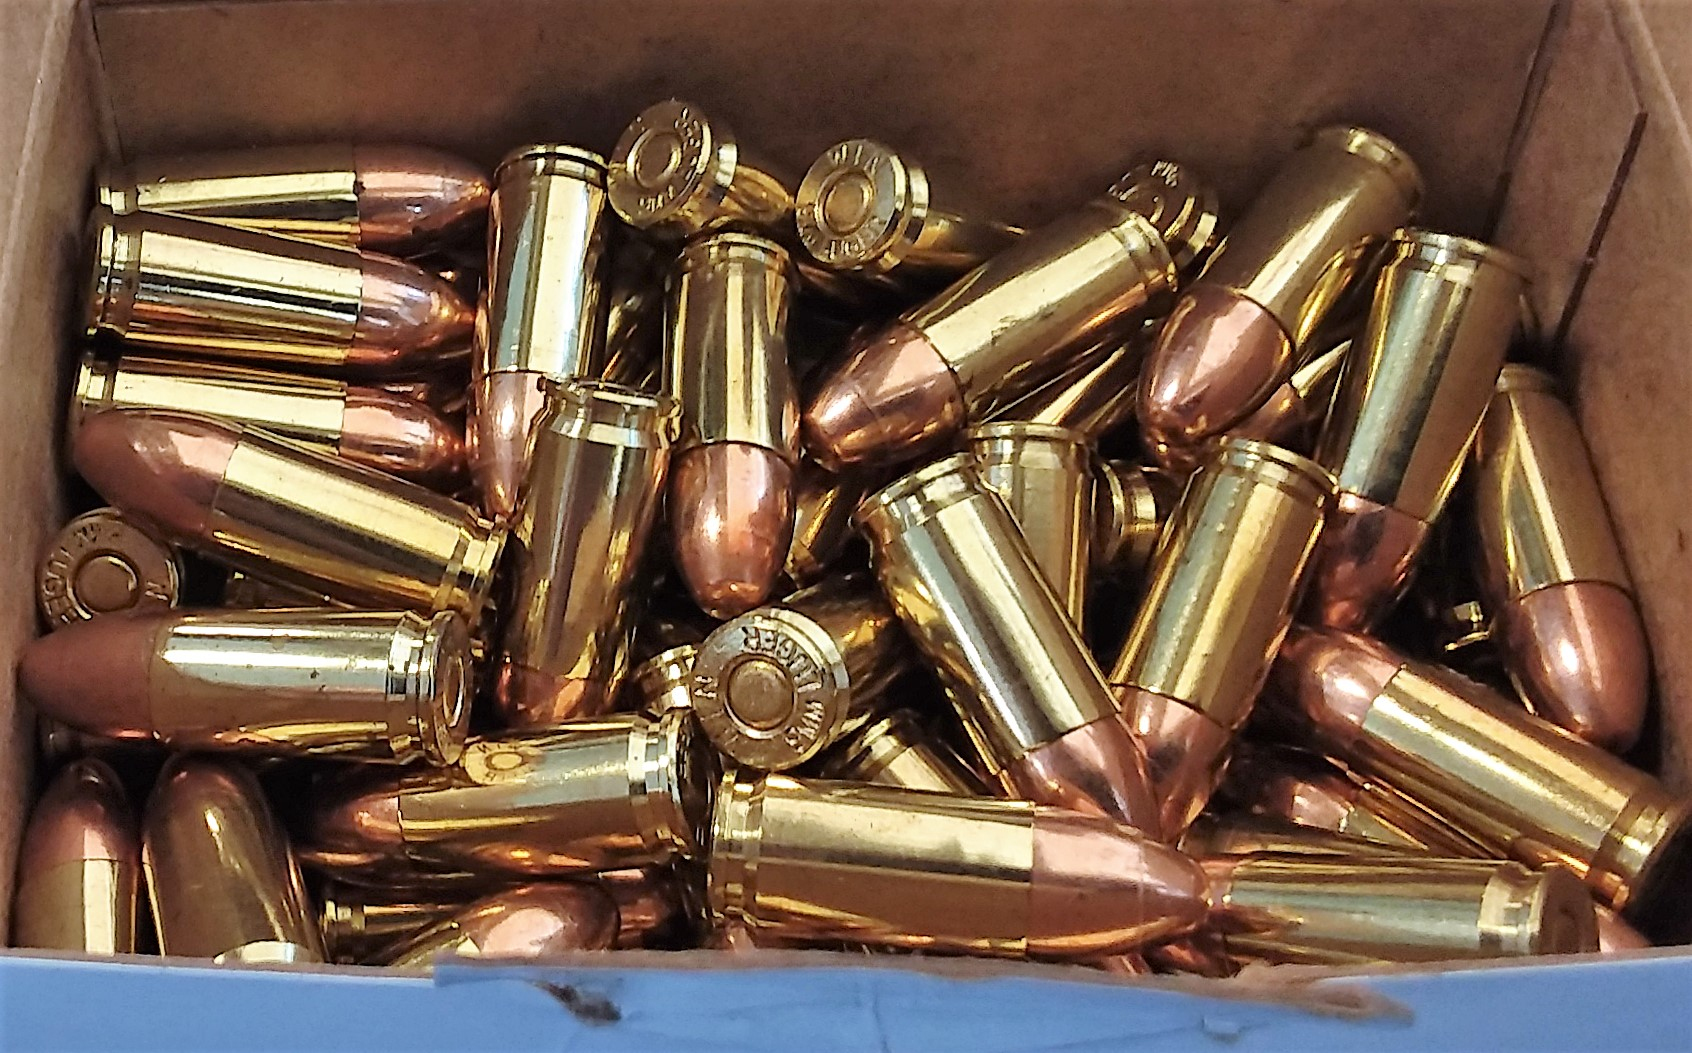 The ammunition pictured here was packed in a carry-on bag at the Roanoke Regional Airport (ROA).